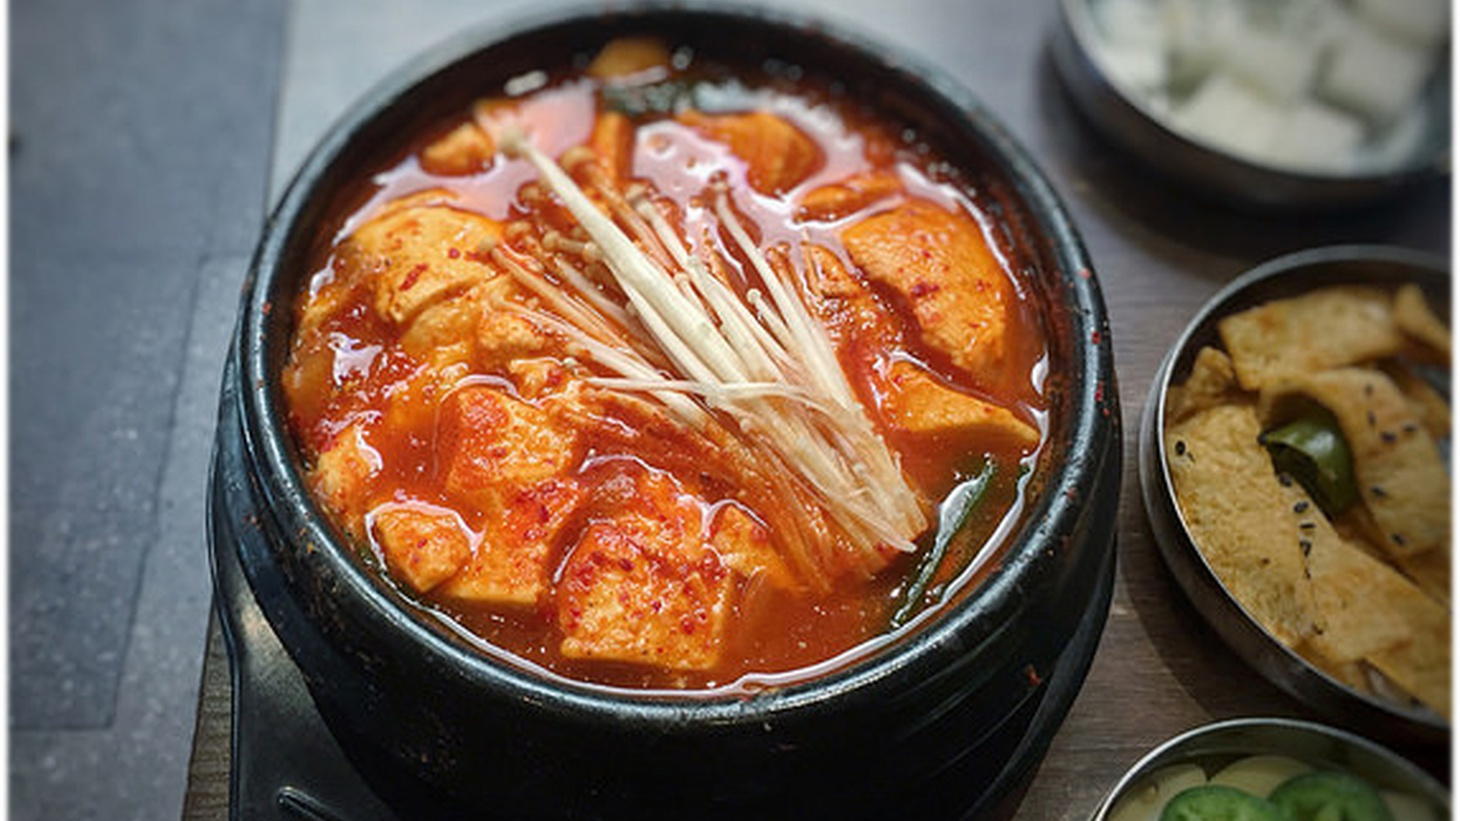 The Pyeongchang Olympics gave millions of viewers a glimpse into Korean culture and food. If you live in LA, enjoying both these things first hand isn't hard.